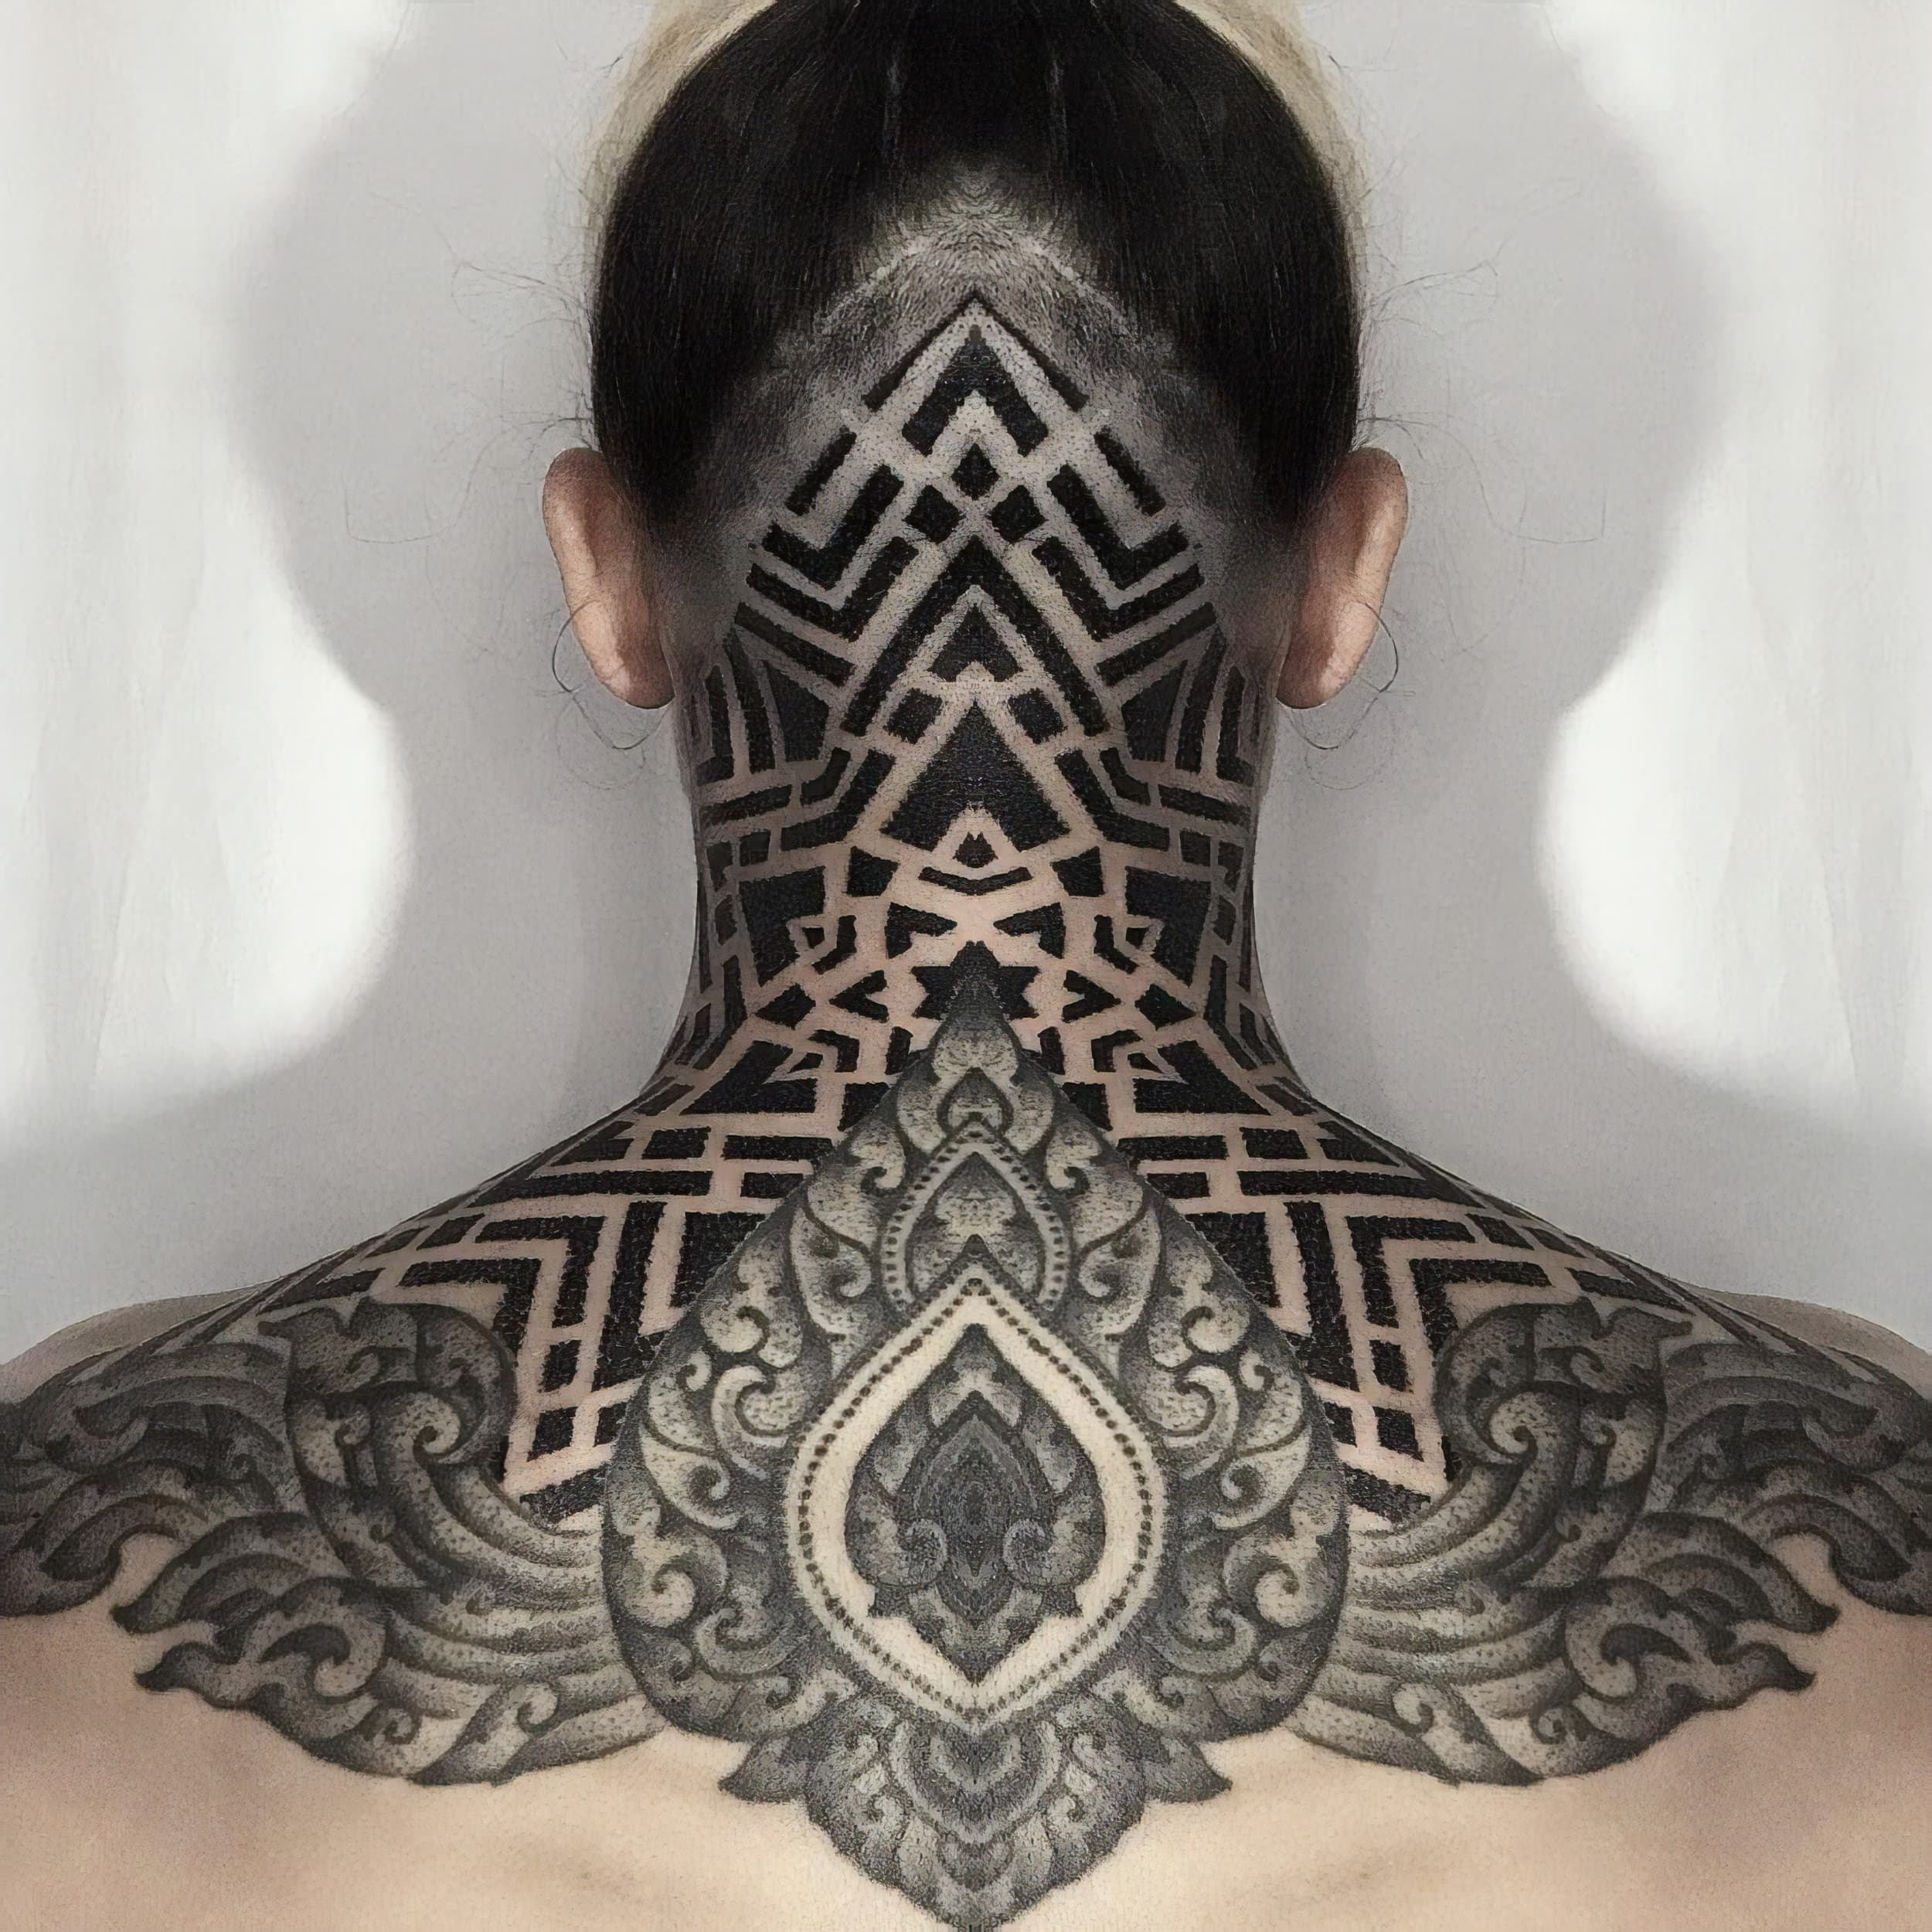 7 Tips & Tricks to Improve Your Tattoodo Tattoo Artist Portfolio